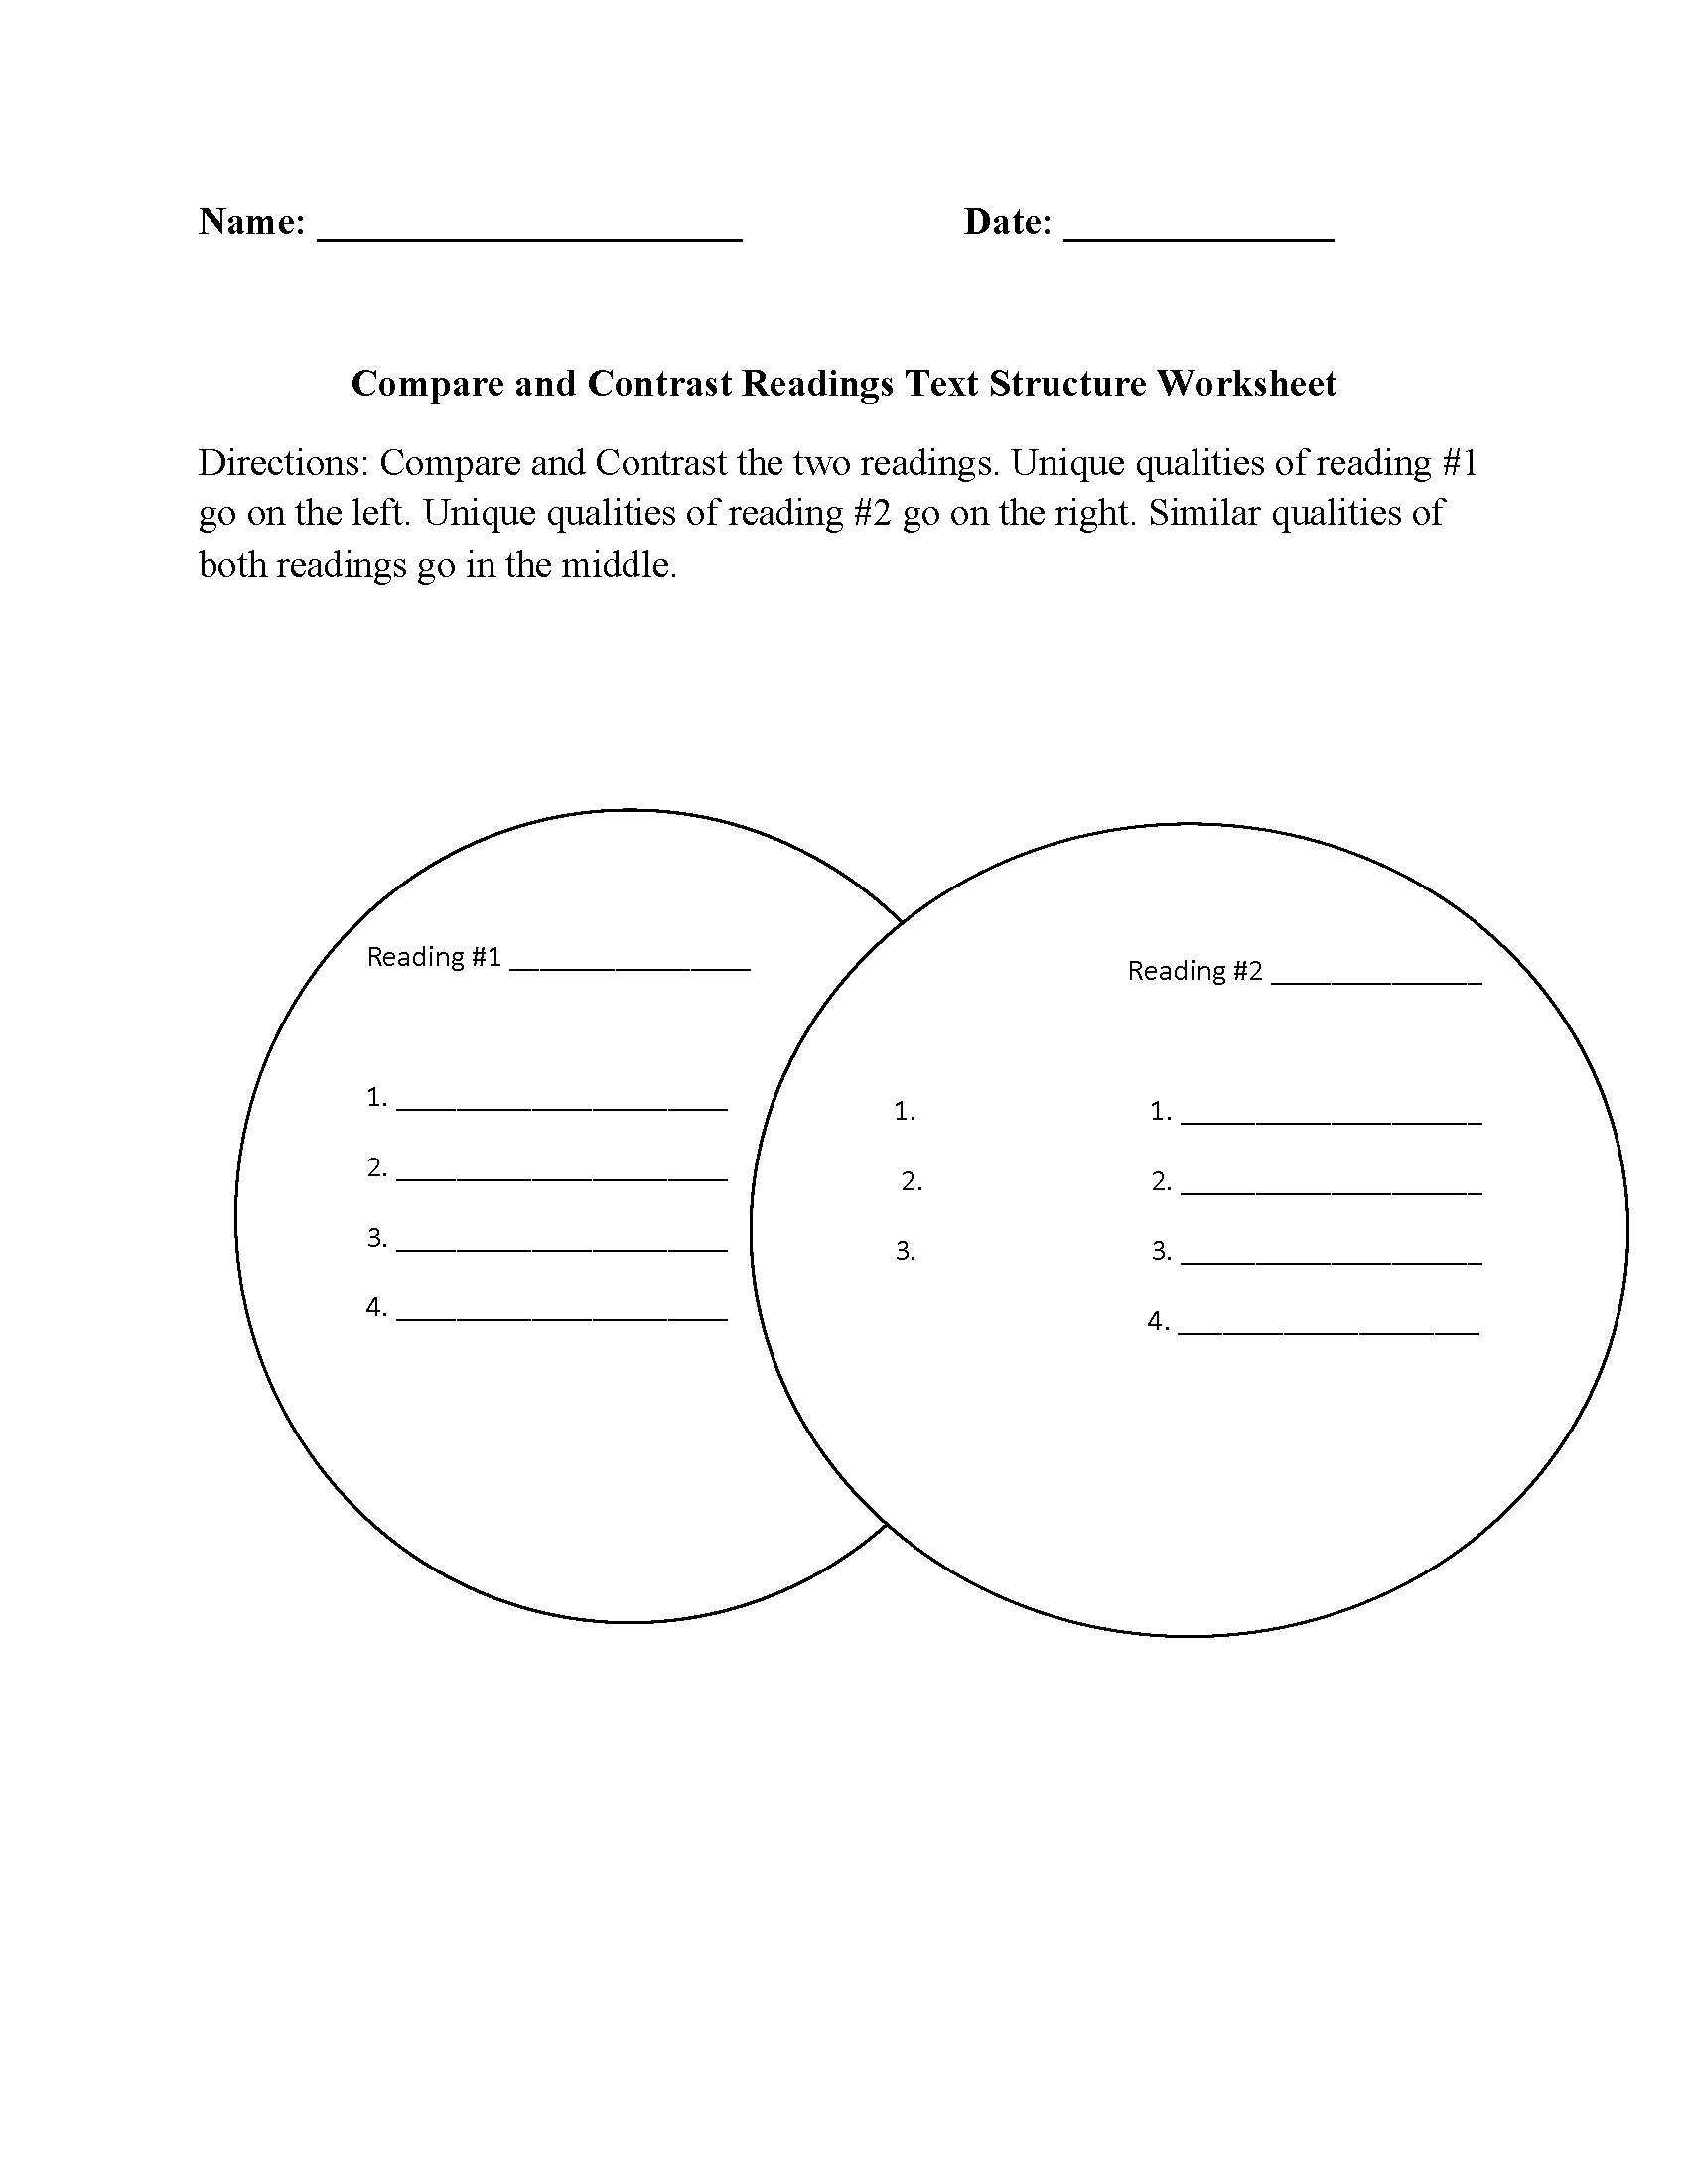 Compare And Contrast Readings Text Structure Worksheets